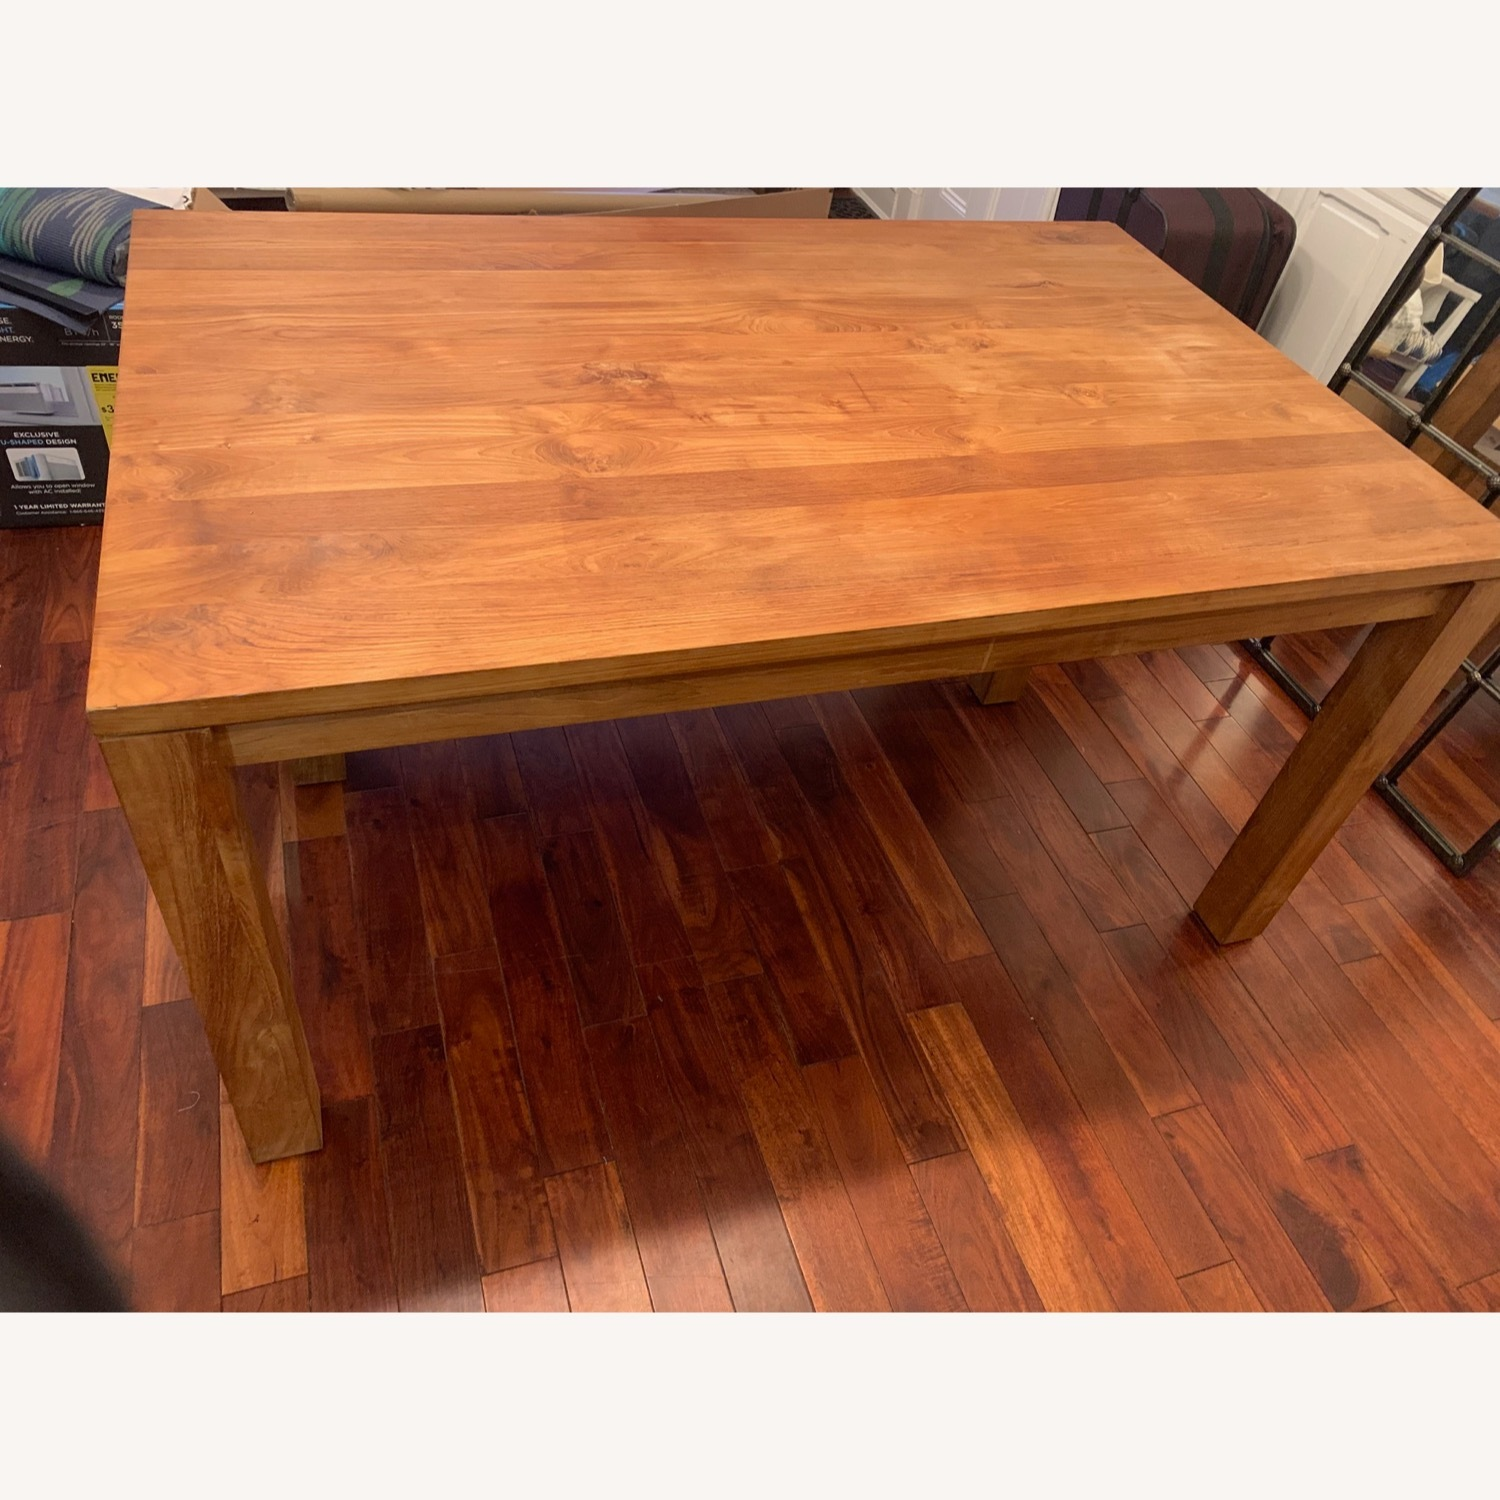 Crate & Barrel Solid Wood Table - image-4